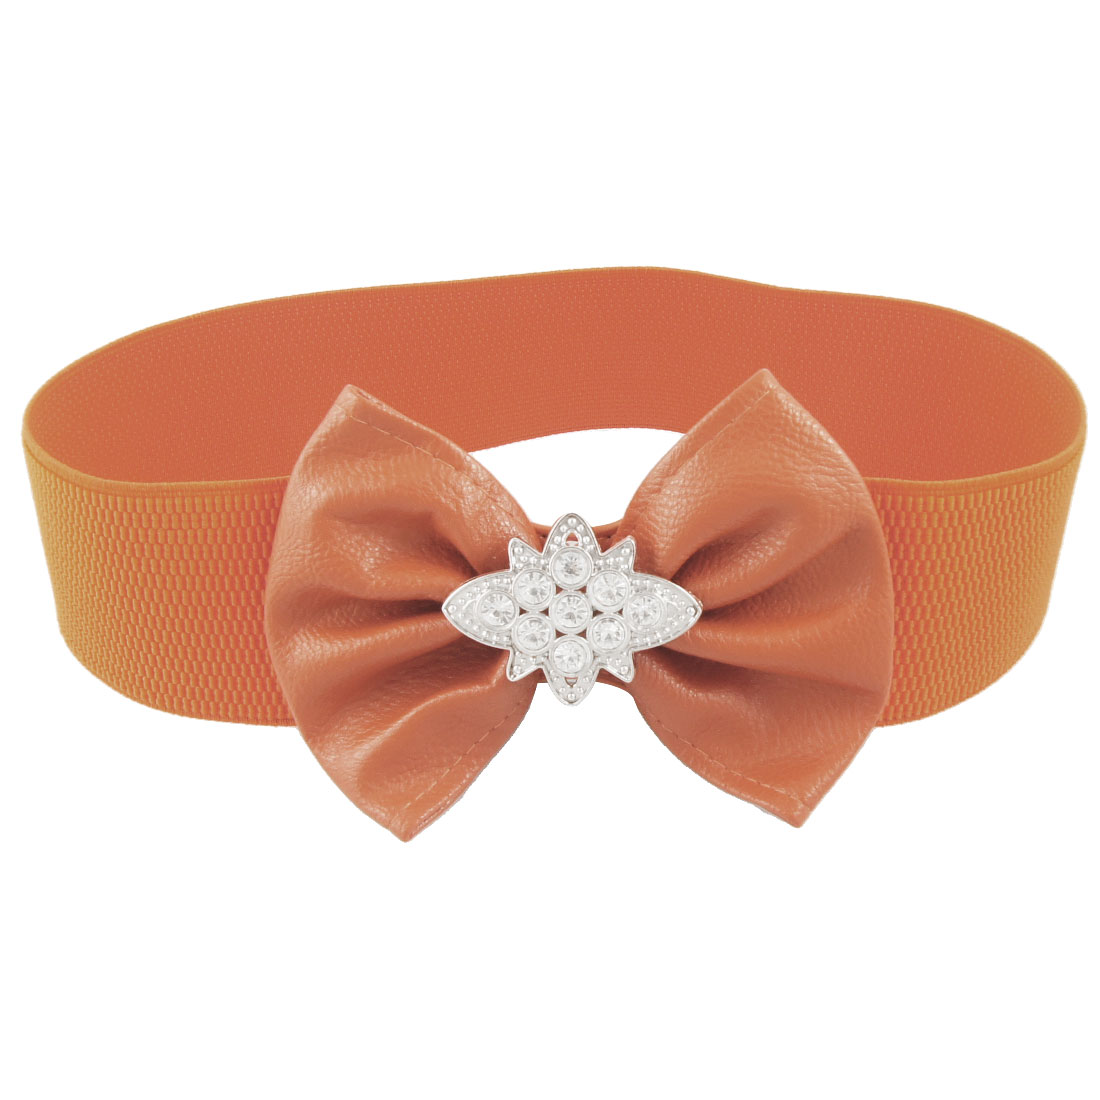 Faux Leather Bowknot Crystal Detail Orange Elastic Cinch Belt for Ladies